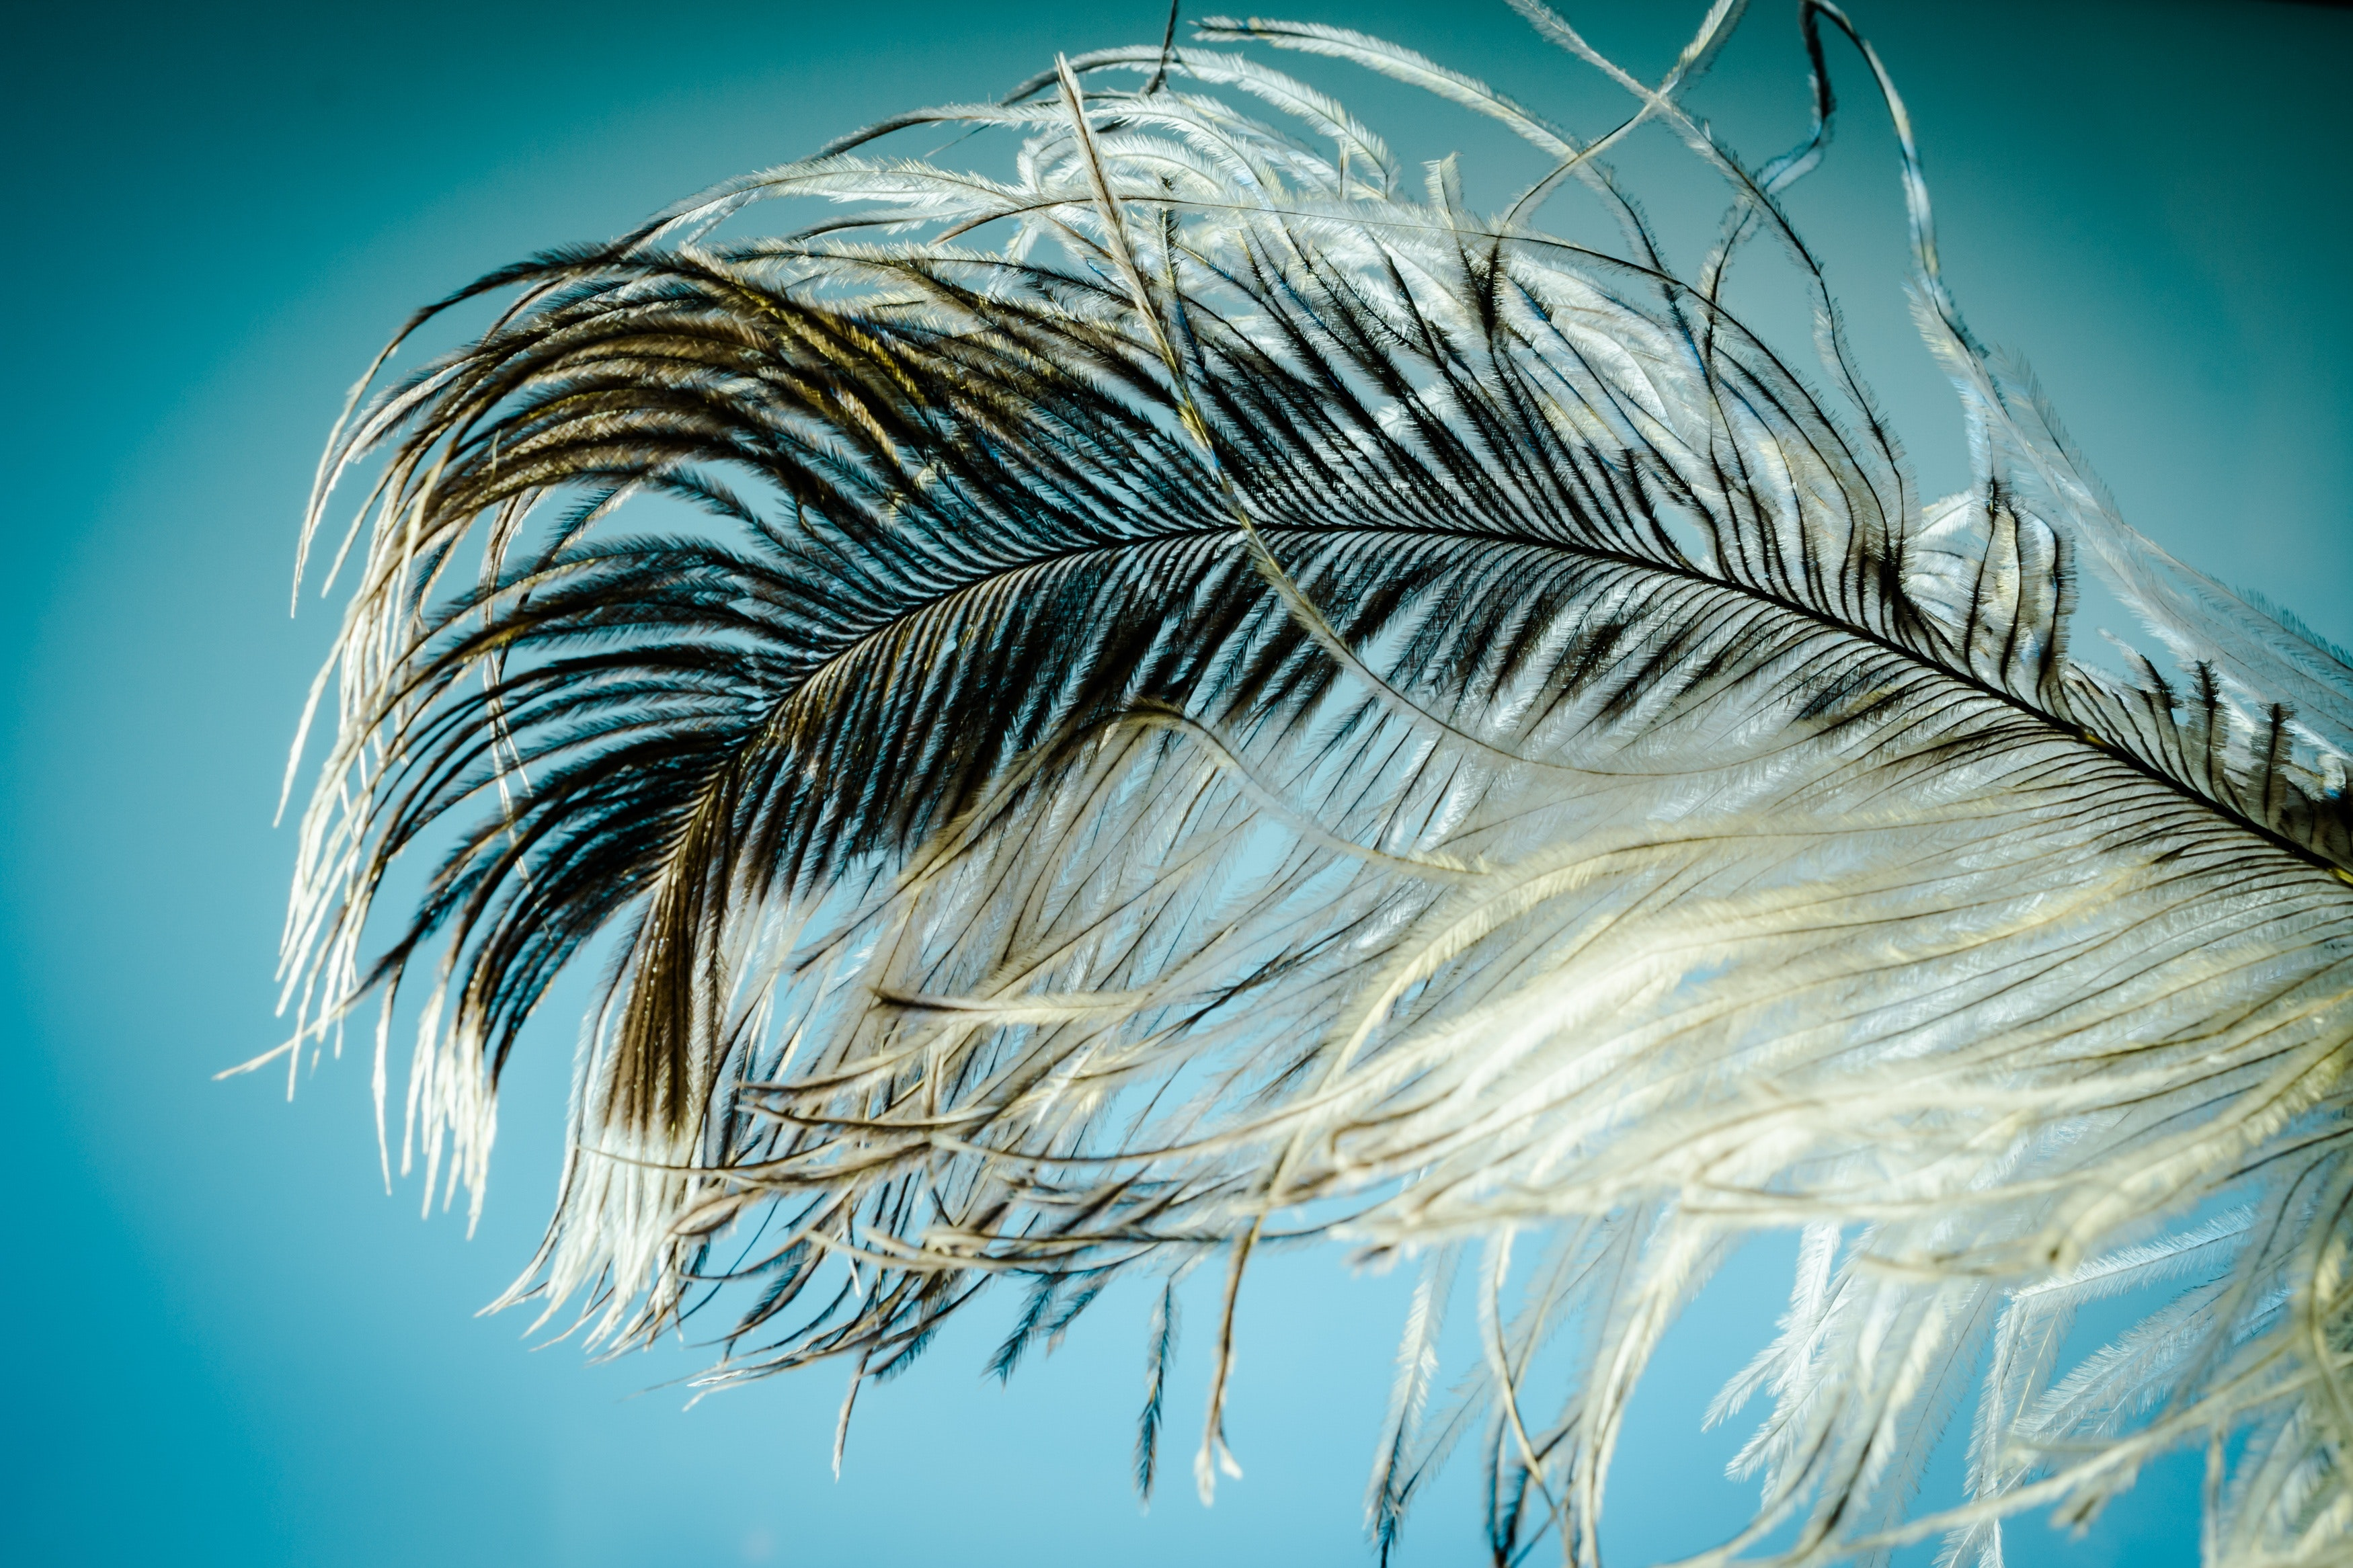 Stock photo of a fluffy black-and-white feather against a blue background, a reference to tickling, one of the kinks I don't have, and also a nice complement to my blue-and-purple blog colour scheme.